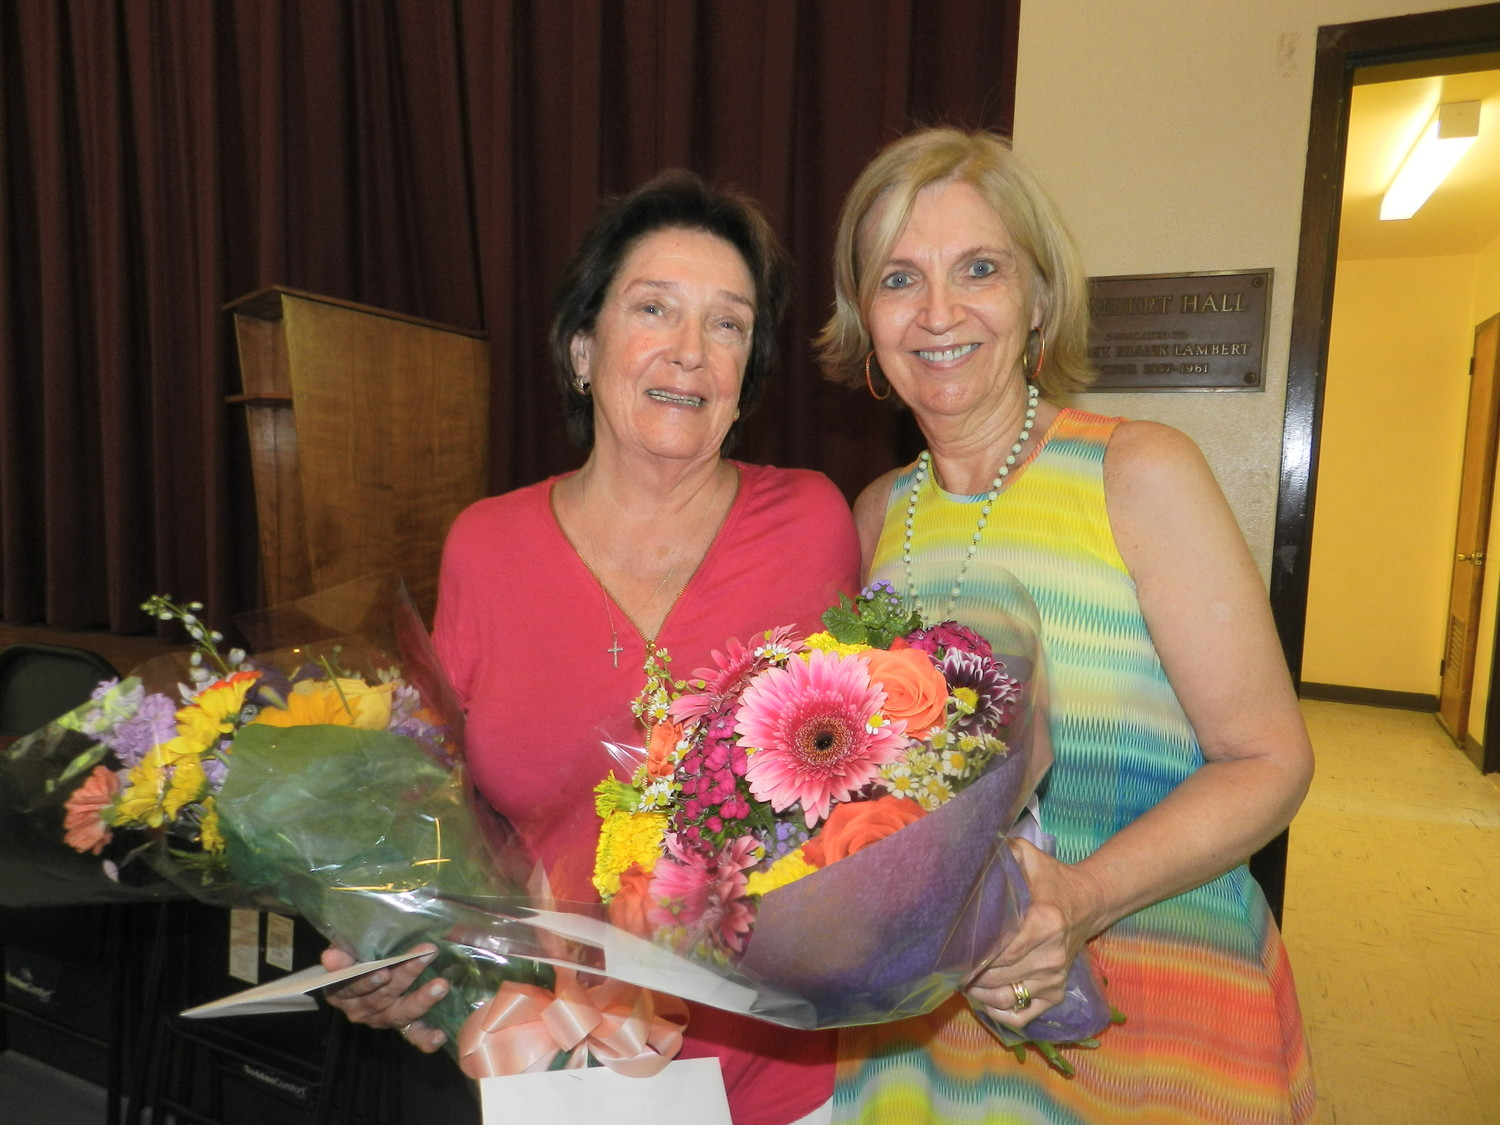 Outgoing lunch program director Janette Heurtley, left, and incoming director Jane McGilloway were surprised with flowers at Heurtley's retirement party.